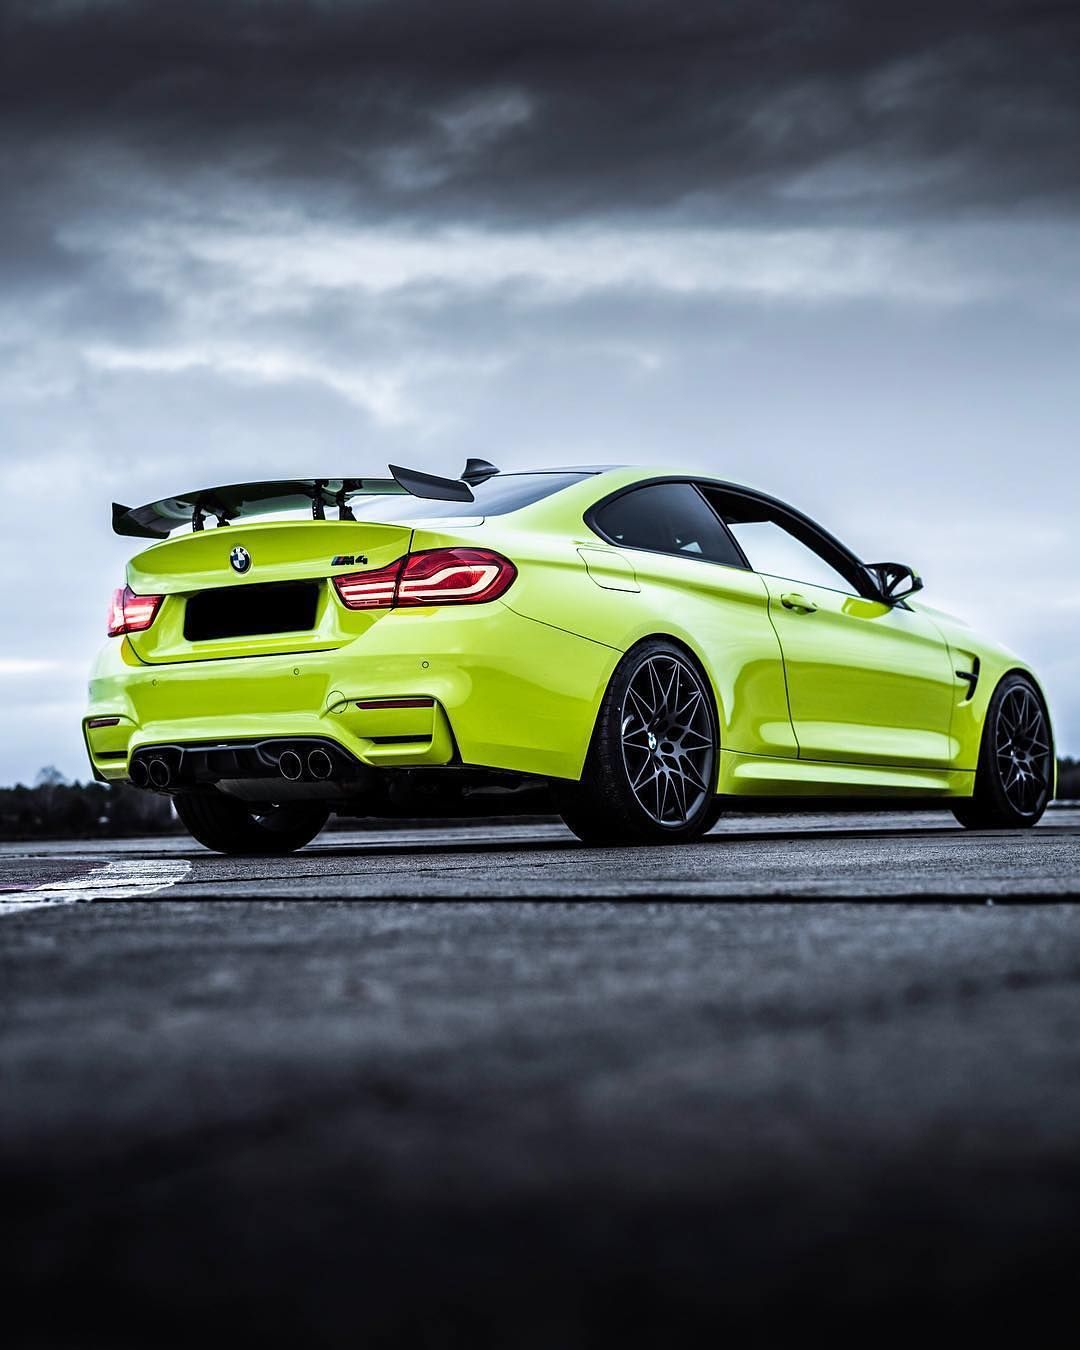 Bmw F82 M4 In Bmw Individual Special Paint Birch Green Life And